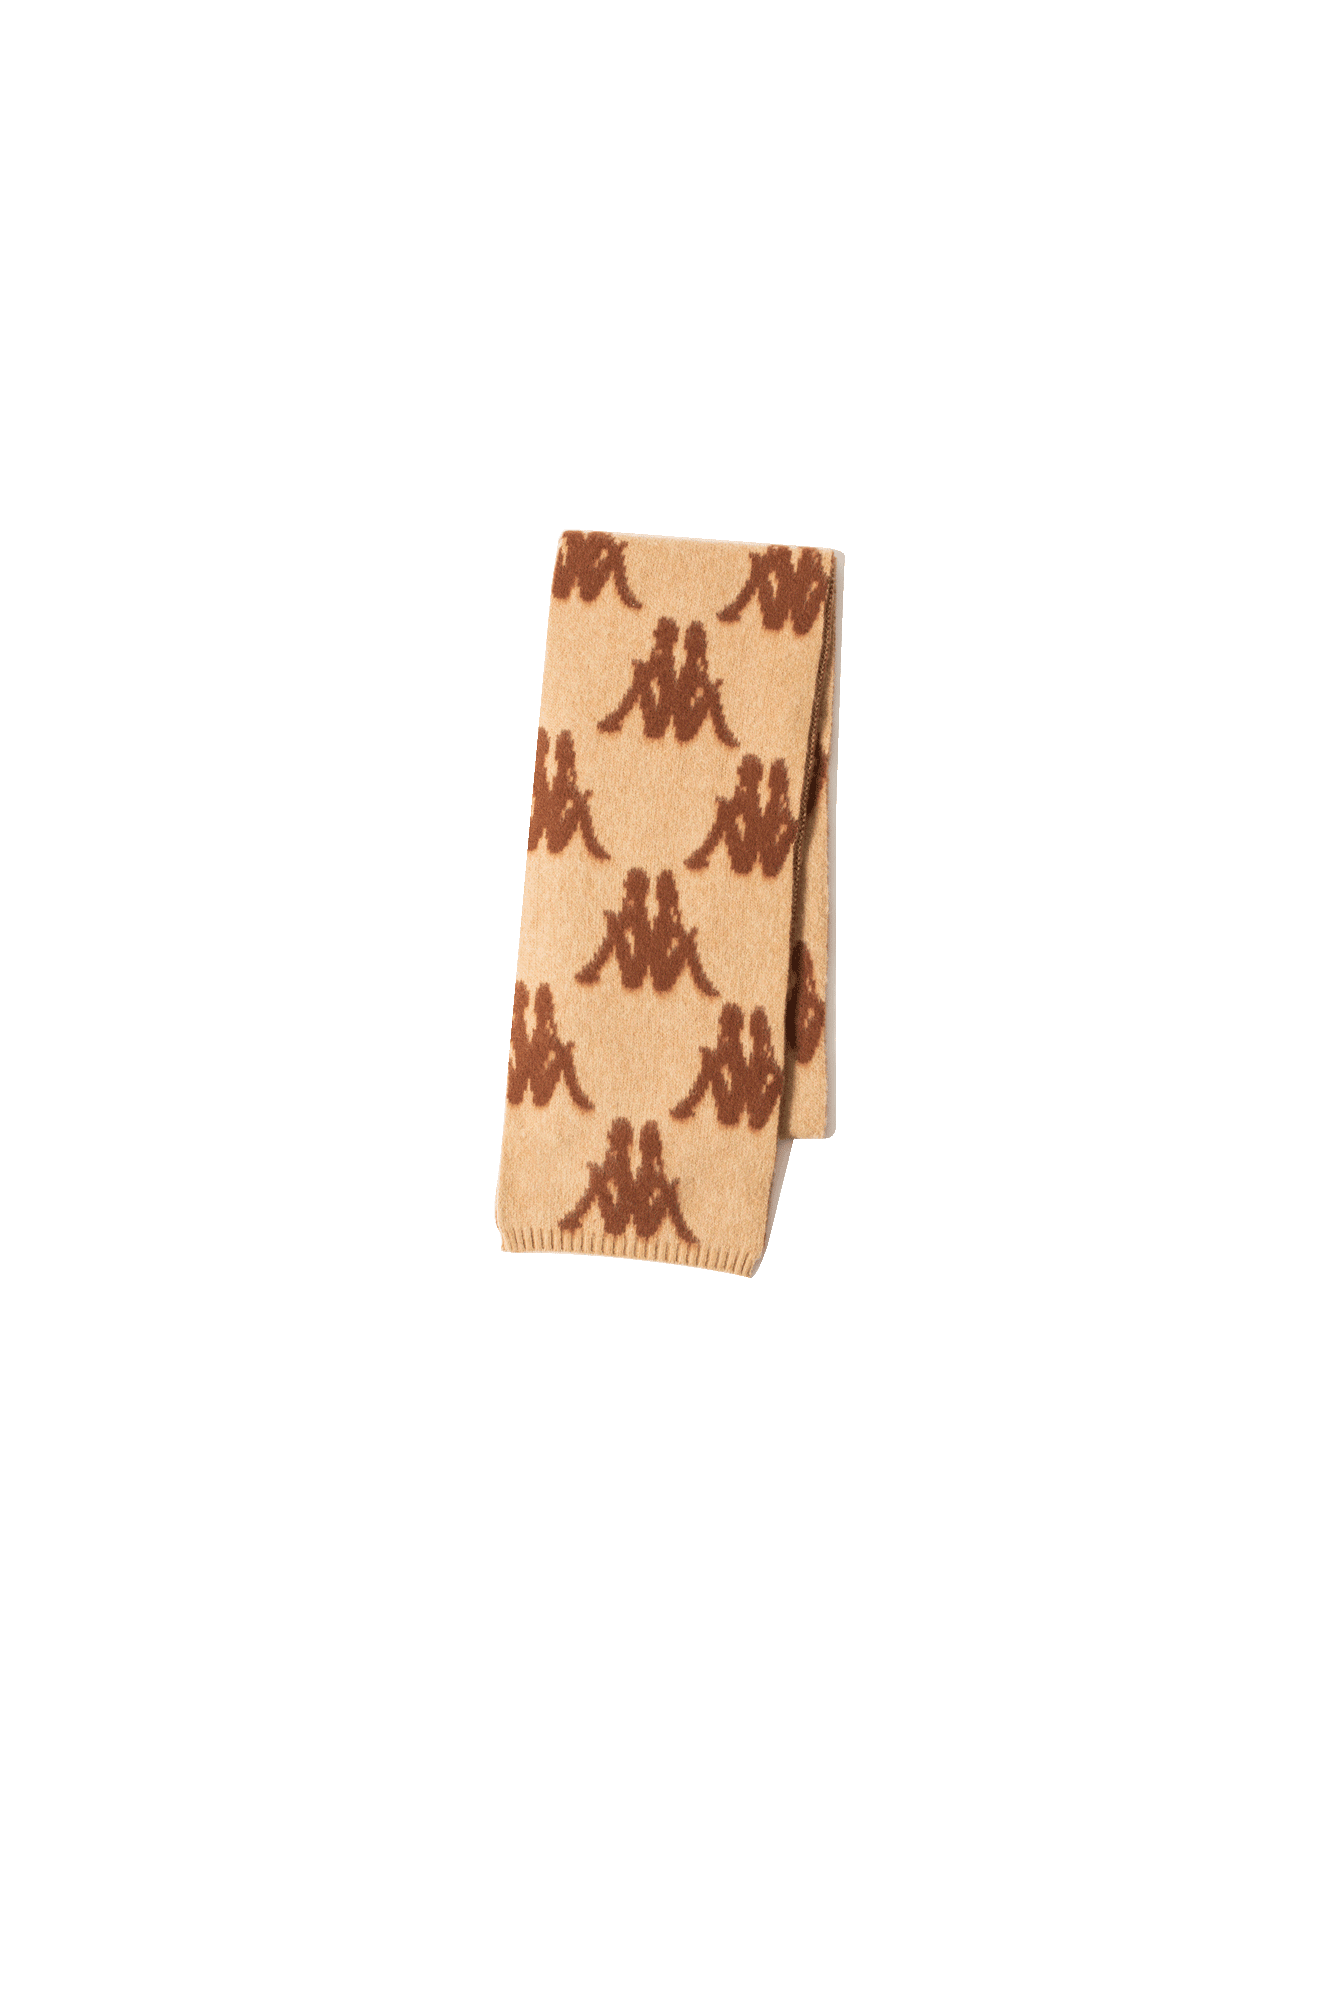 Danilo Paura x Kappa Knitwear Stefan Scarf All Over Brown DPK9001#000#721#OS - One Block Down